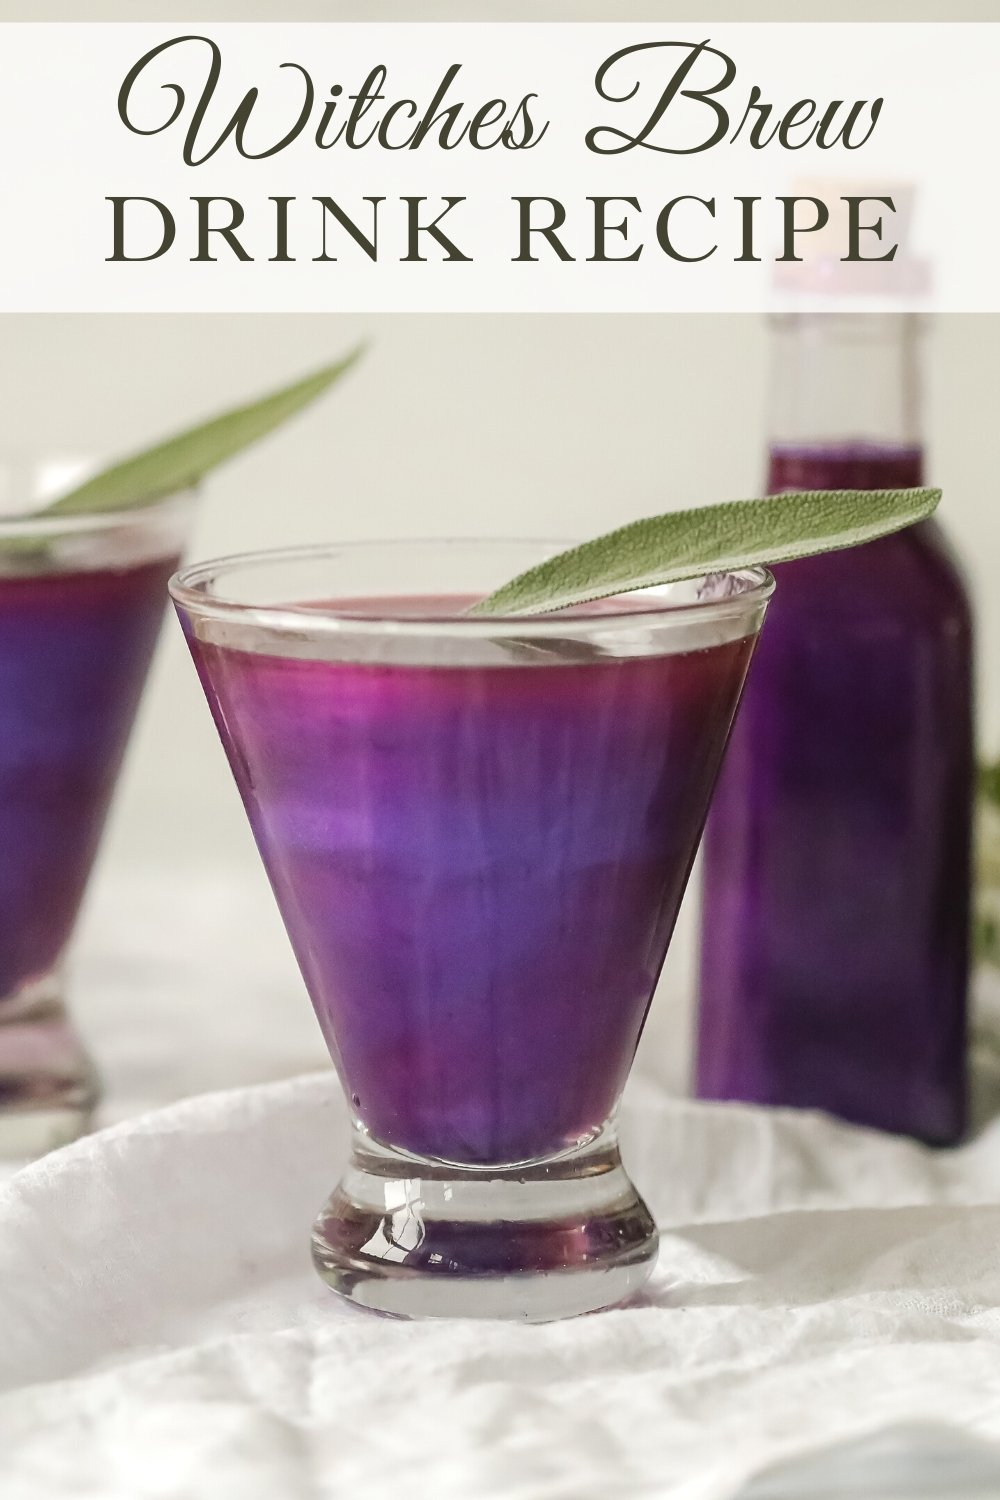 Witches Brew Drink recipe